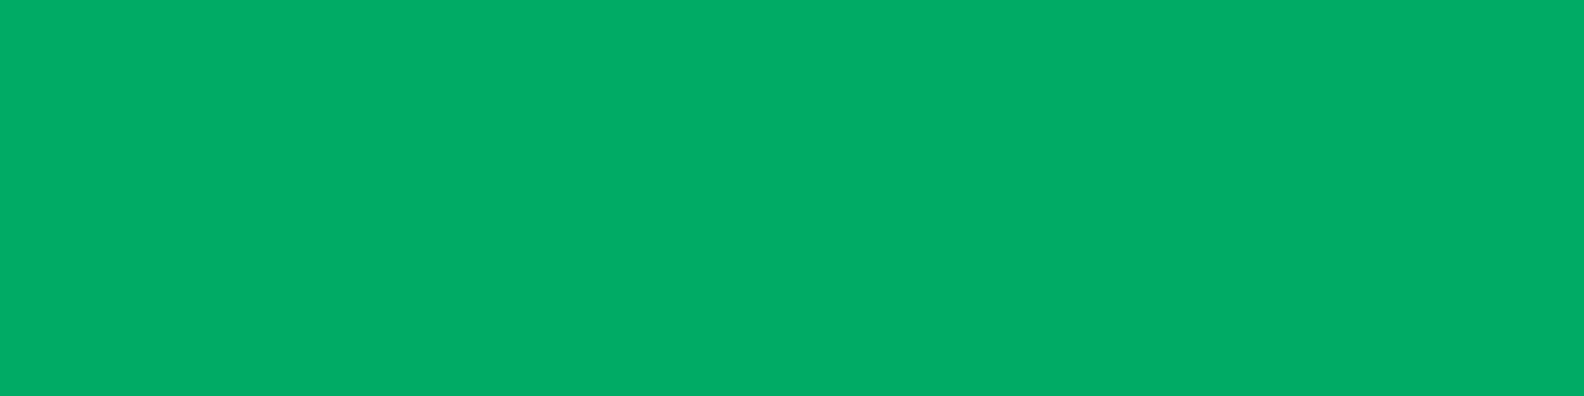 1584x396 GO Green Solid Color Background